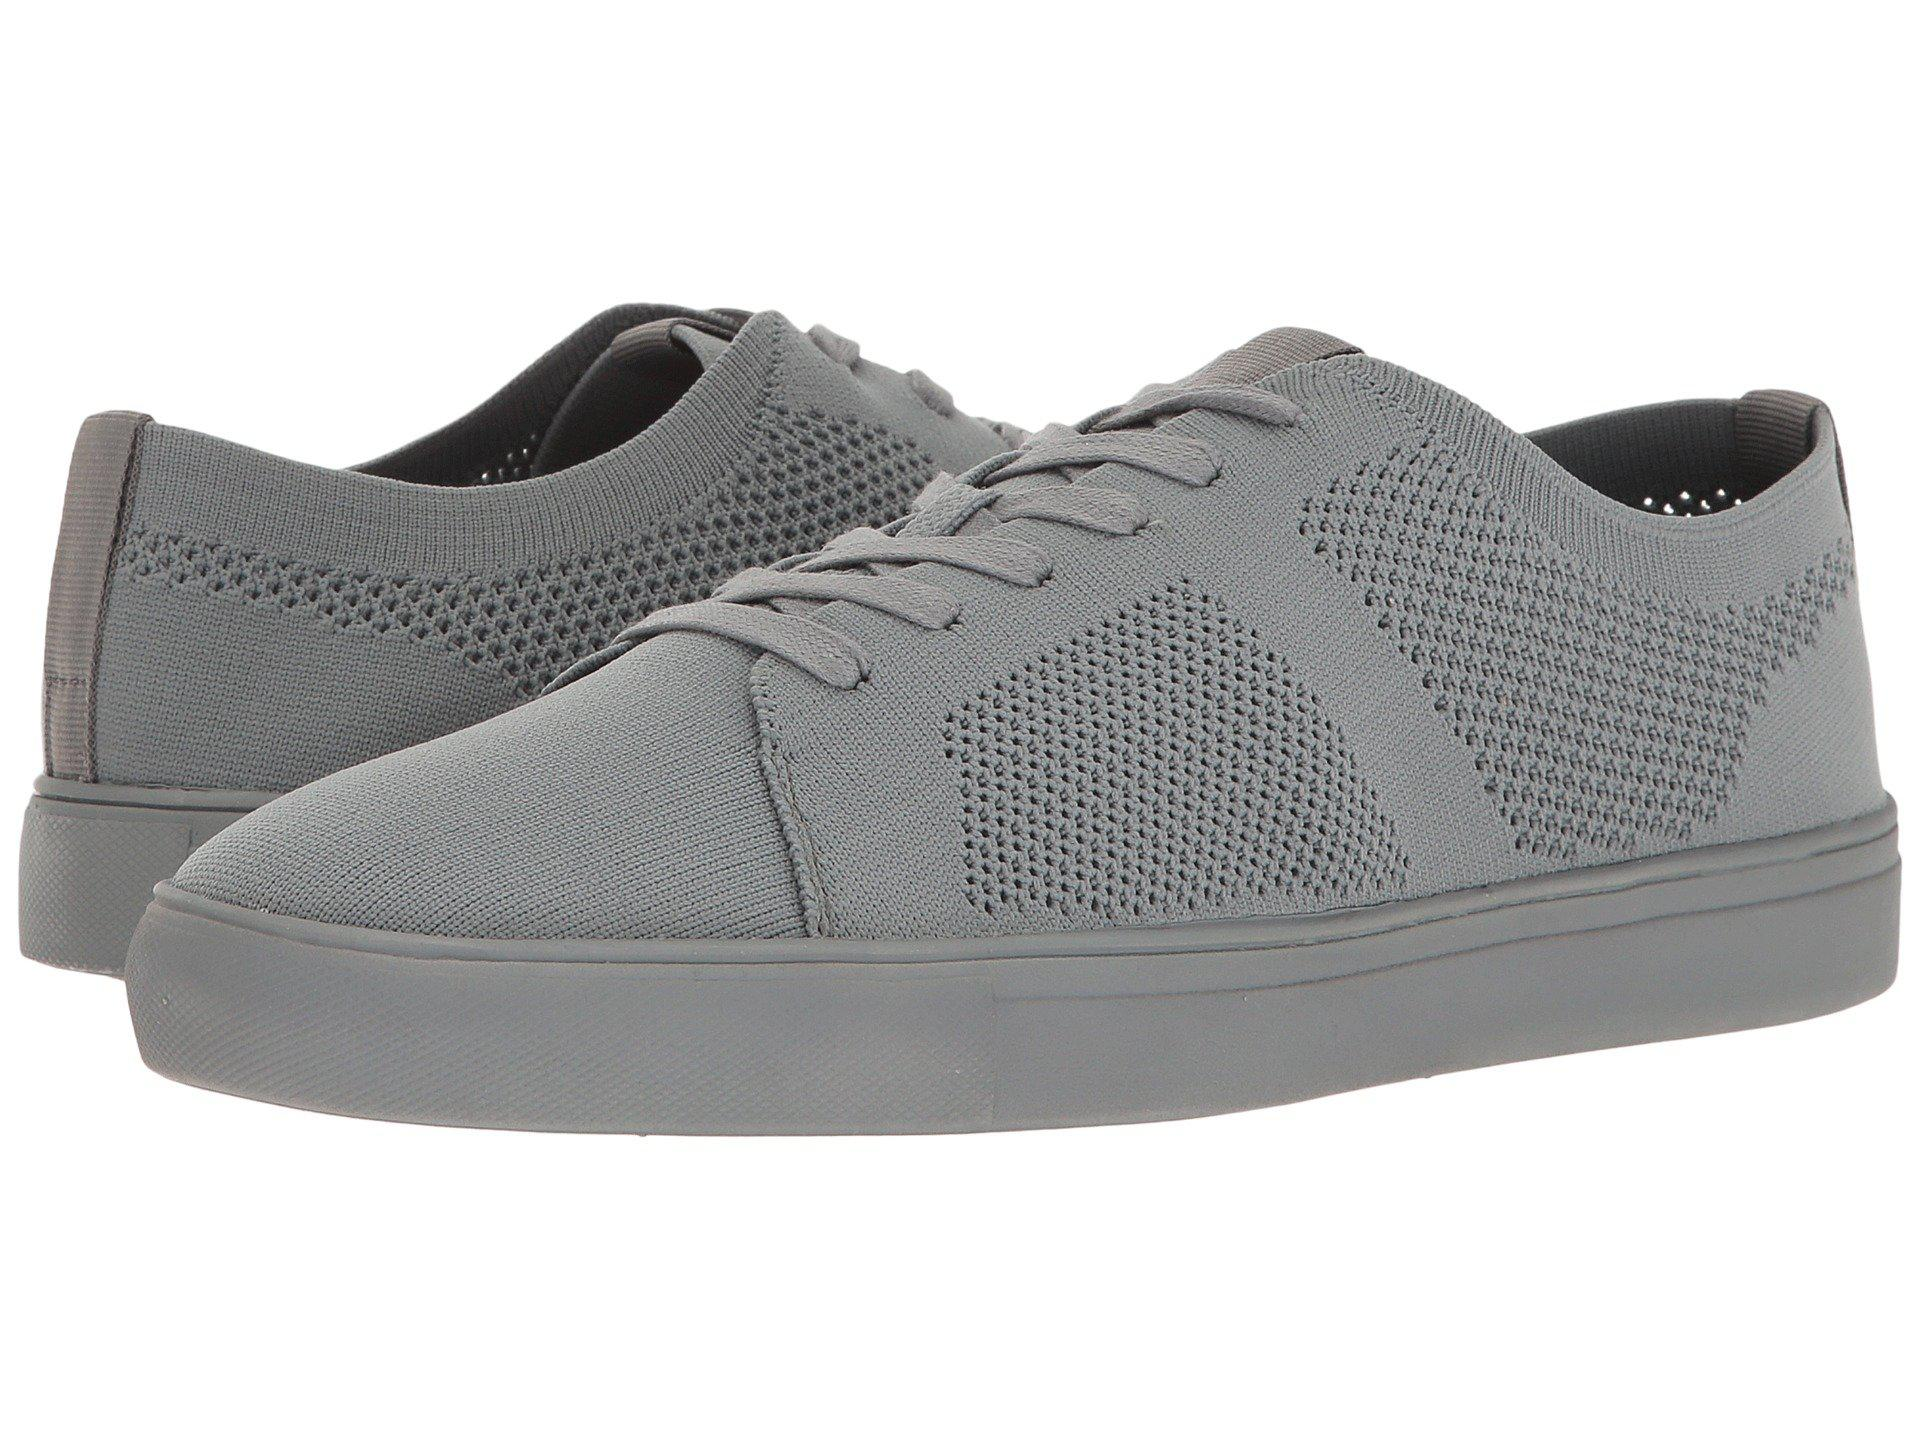 8ae53edada8 Lyst - Steve Madden Wexler in Gray for Men - Save 60.0%